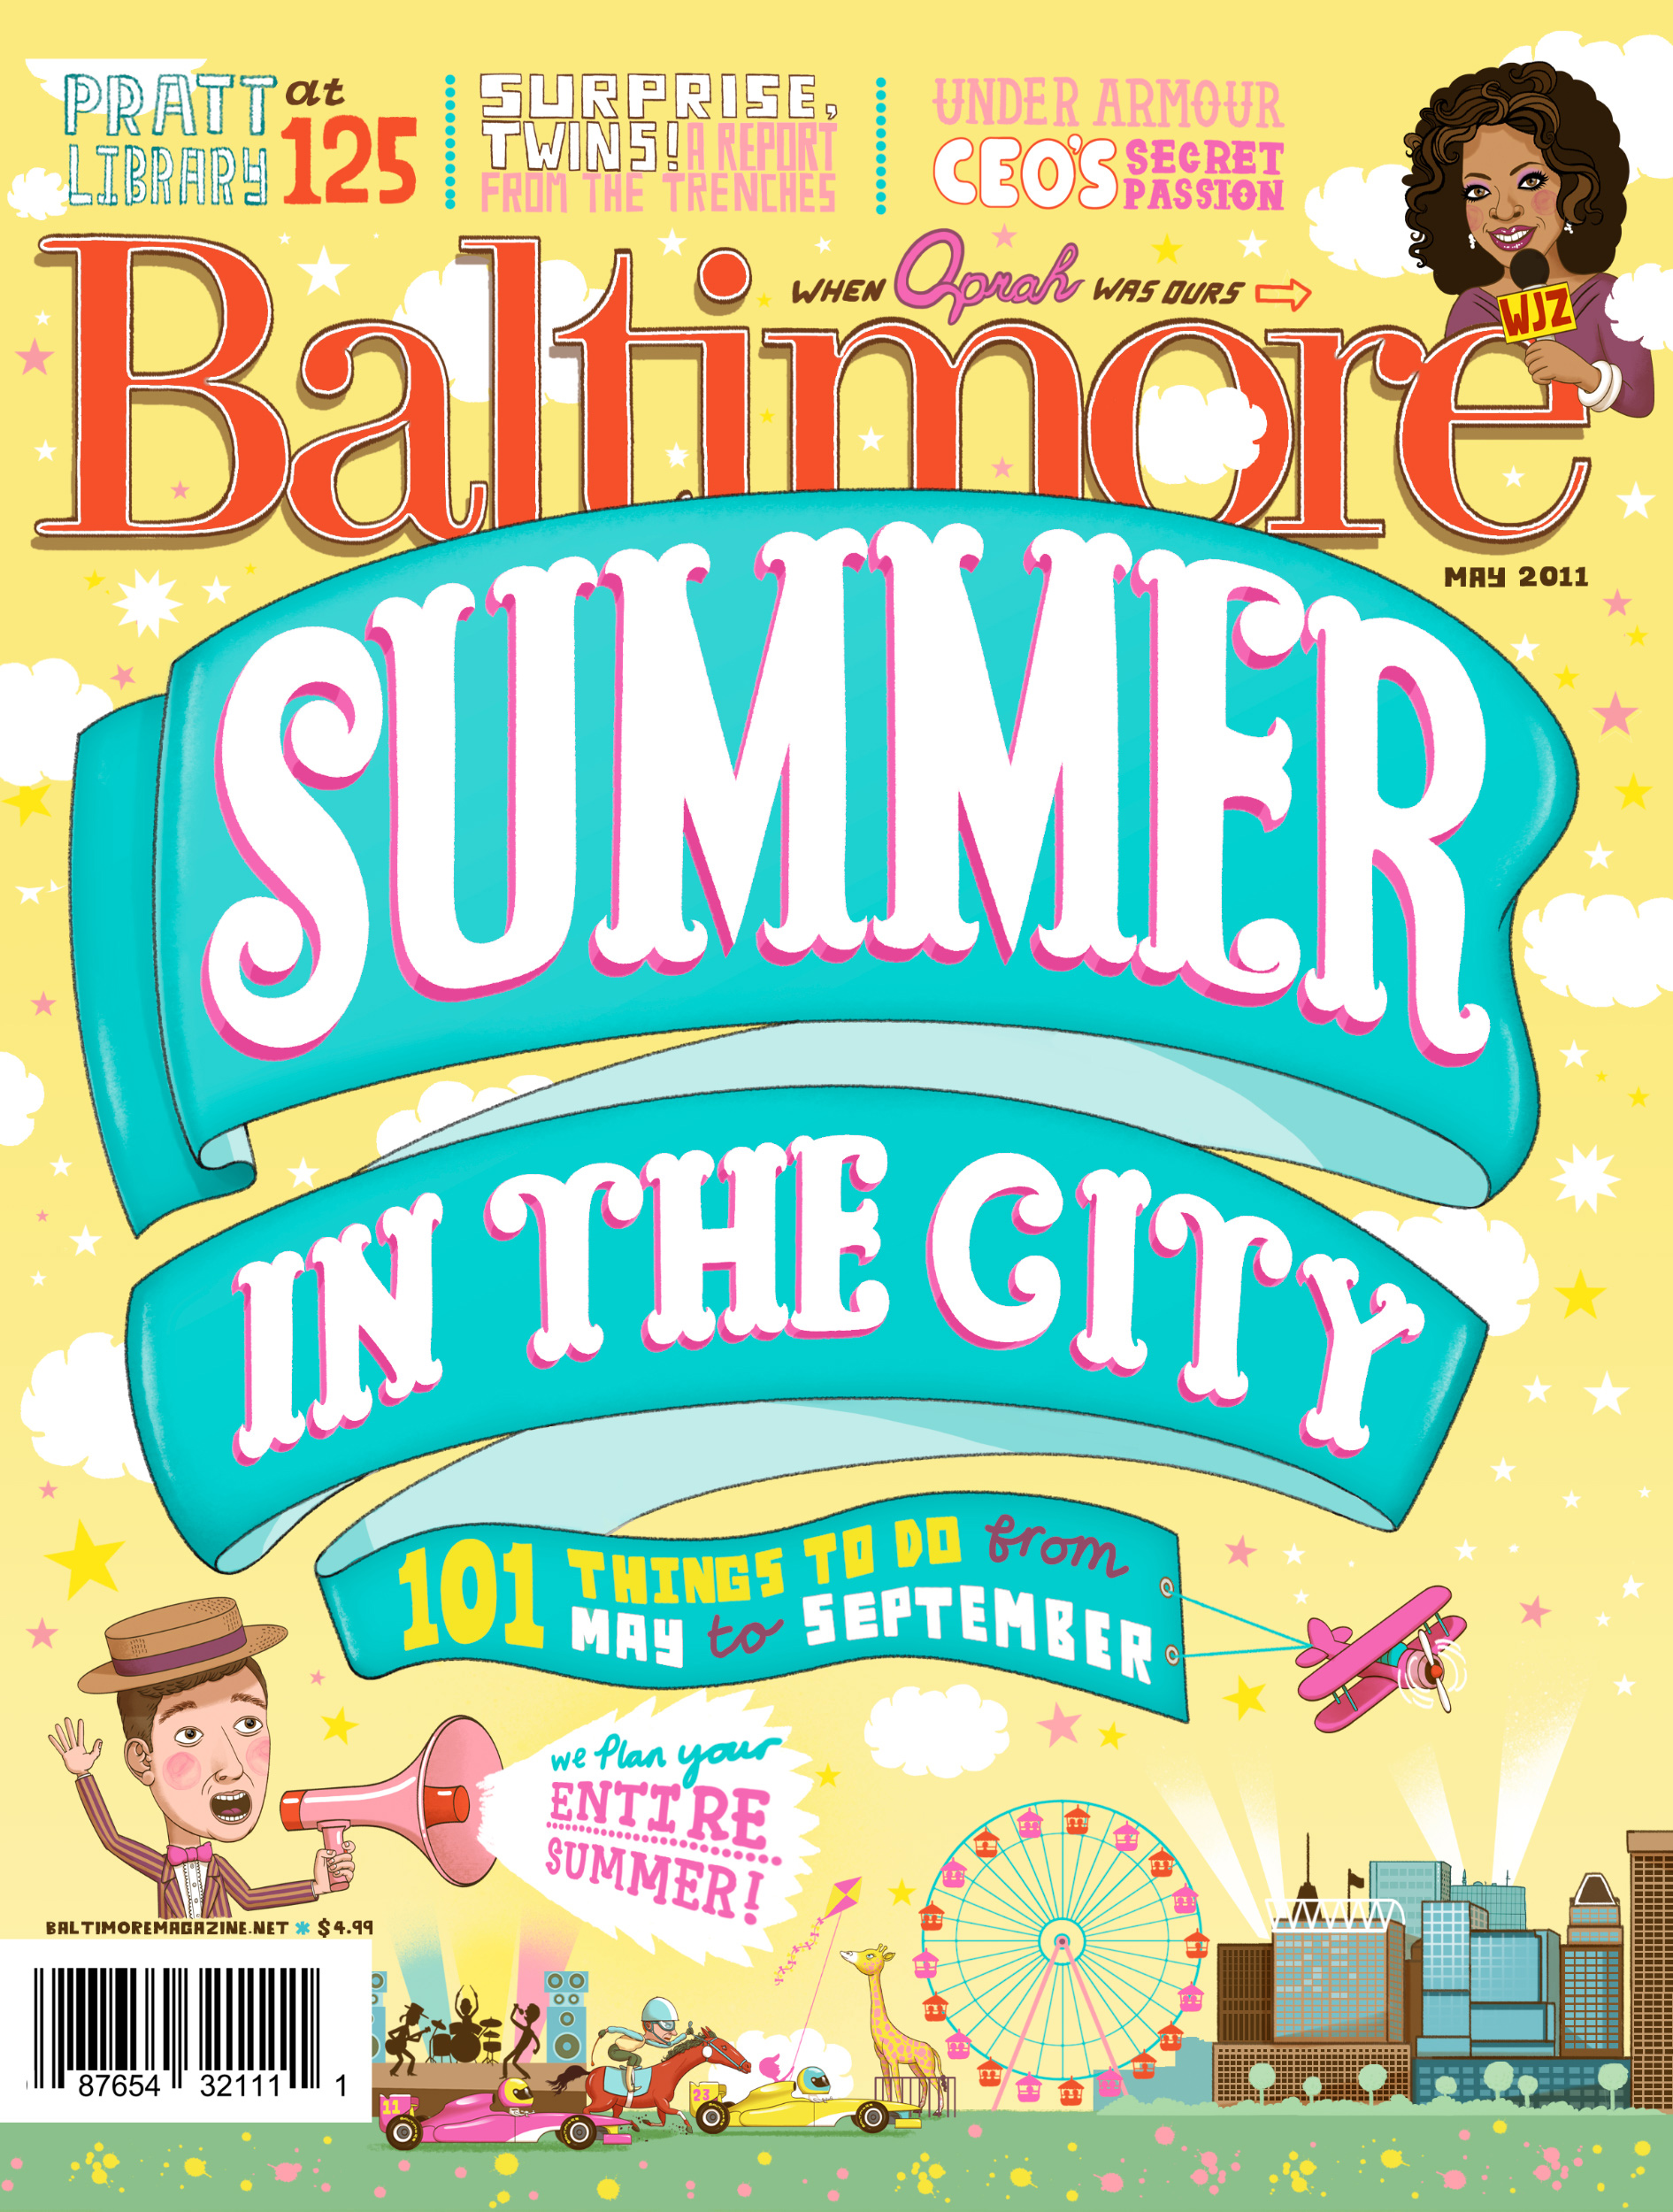 - A completely hand drawn cover for Baltimore Magazine!